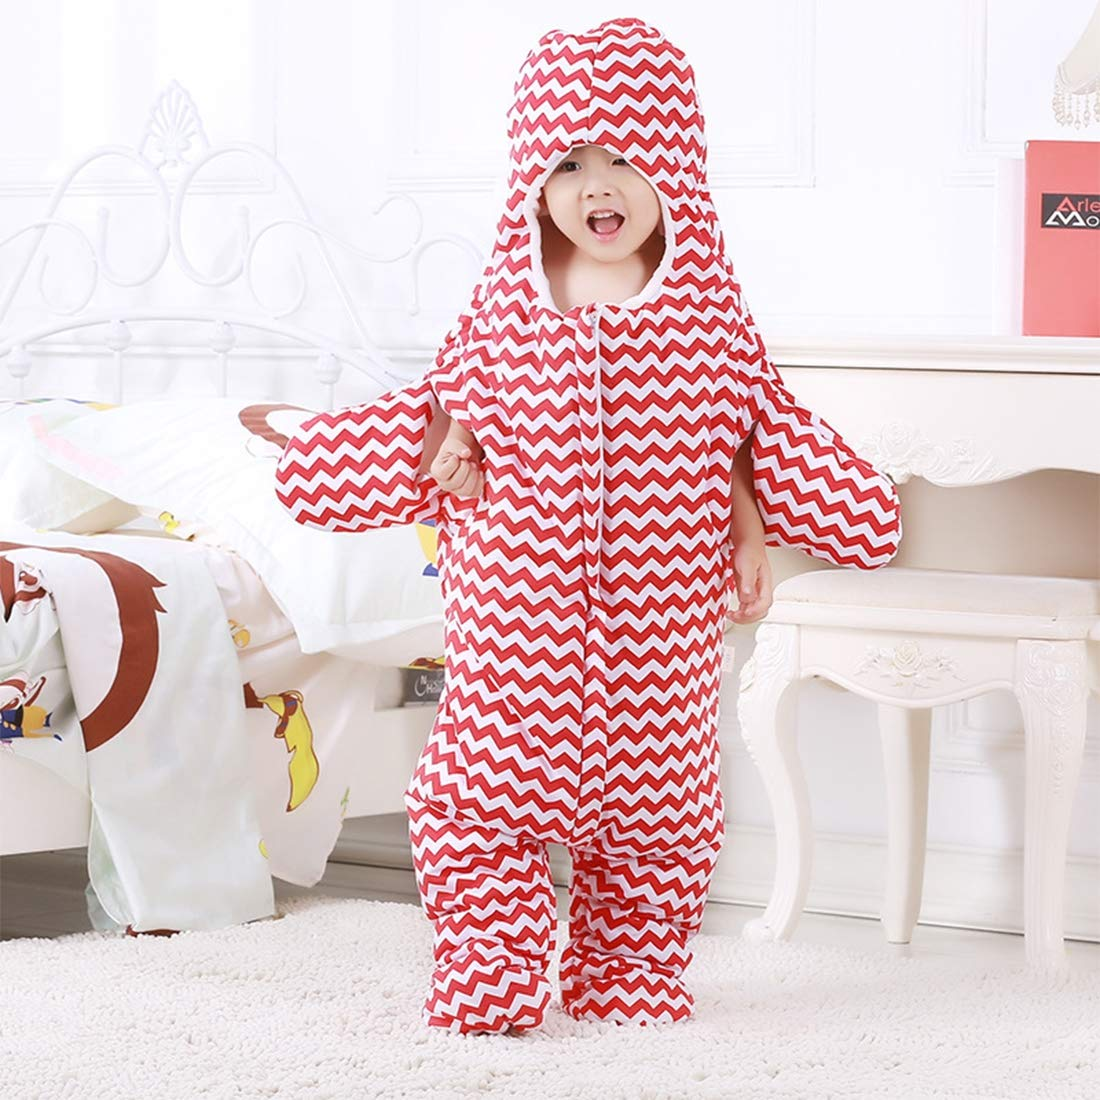 Baby Furniture Baby Nest Bed Cute Starfish Style Baby Sleeping Clothing Bag for 1-1.5 Years Baby, Size: 105yard(Black) (Color : Red) by LUOFUSHENG